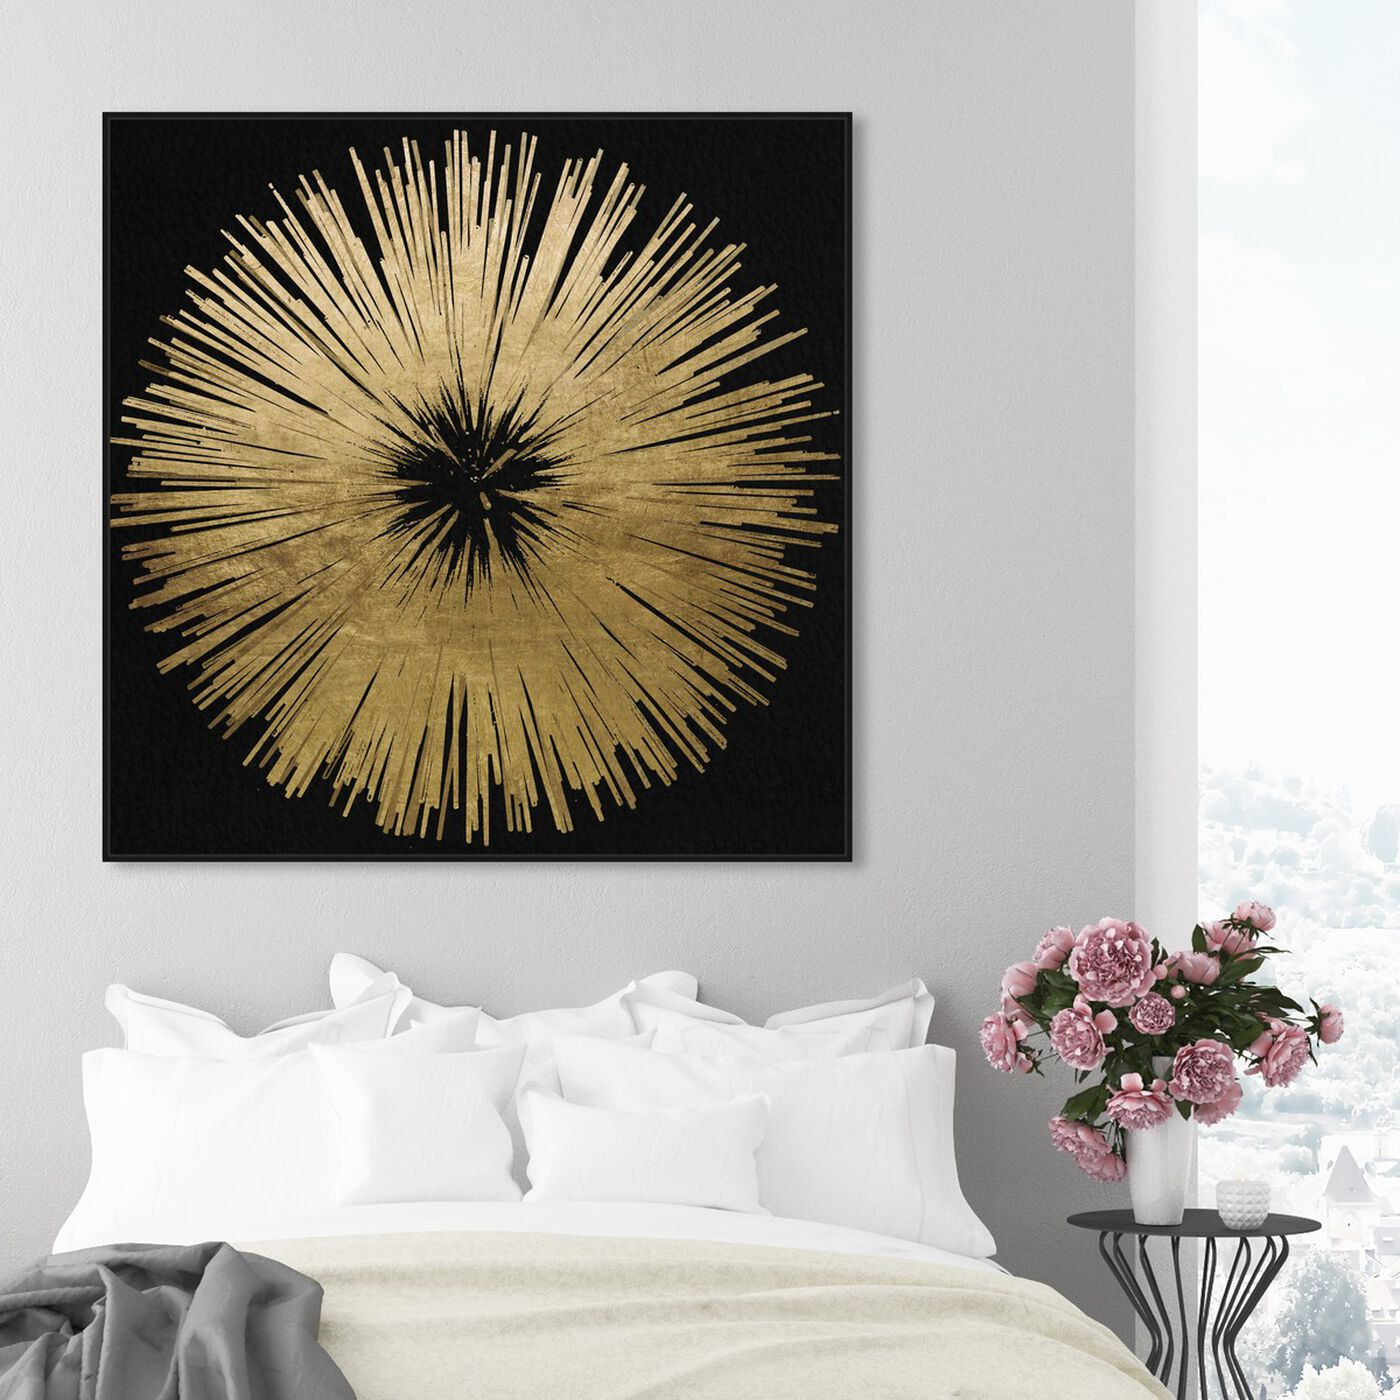 Hanging view of Sunburst Golden Night featuring abstract and paint art.